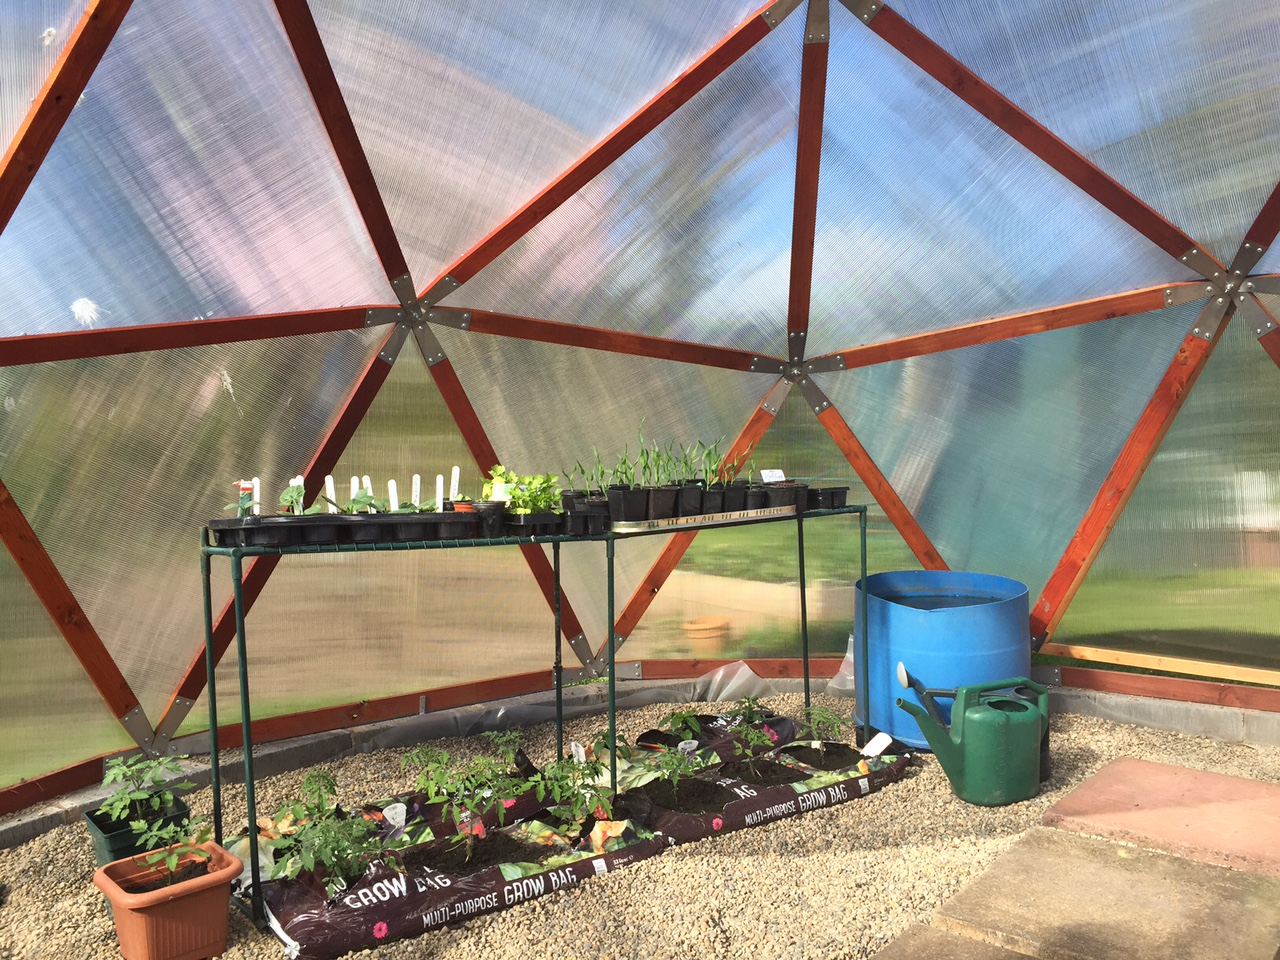 Finished. The melon, sweetcorn and cucumber plants have started to race away and its tropical temperatures in the dome.